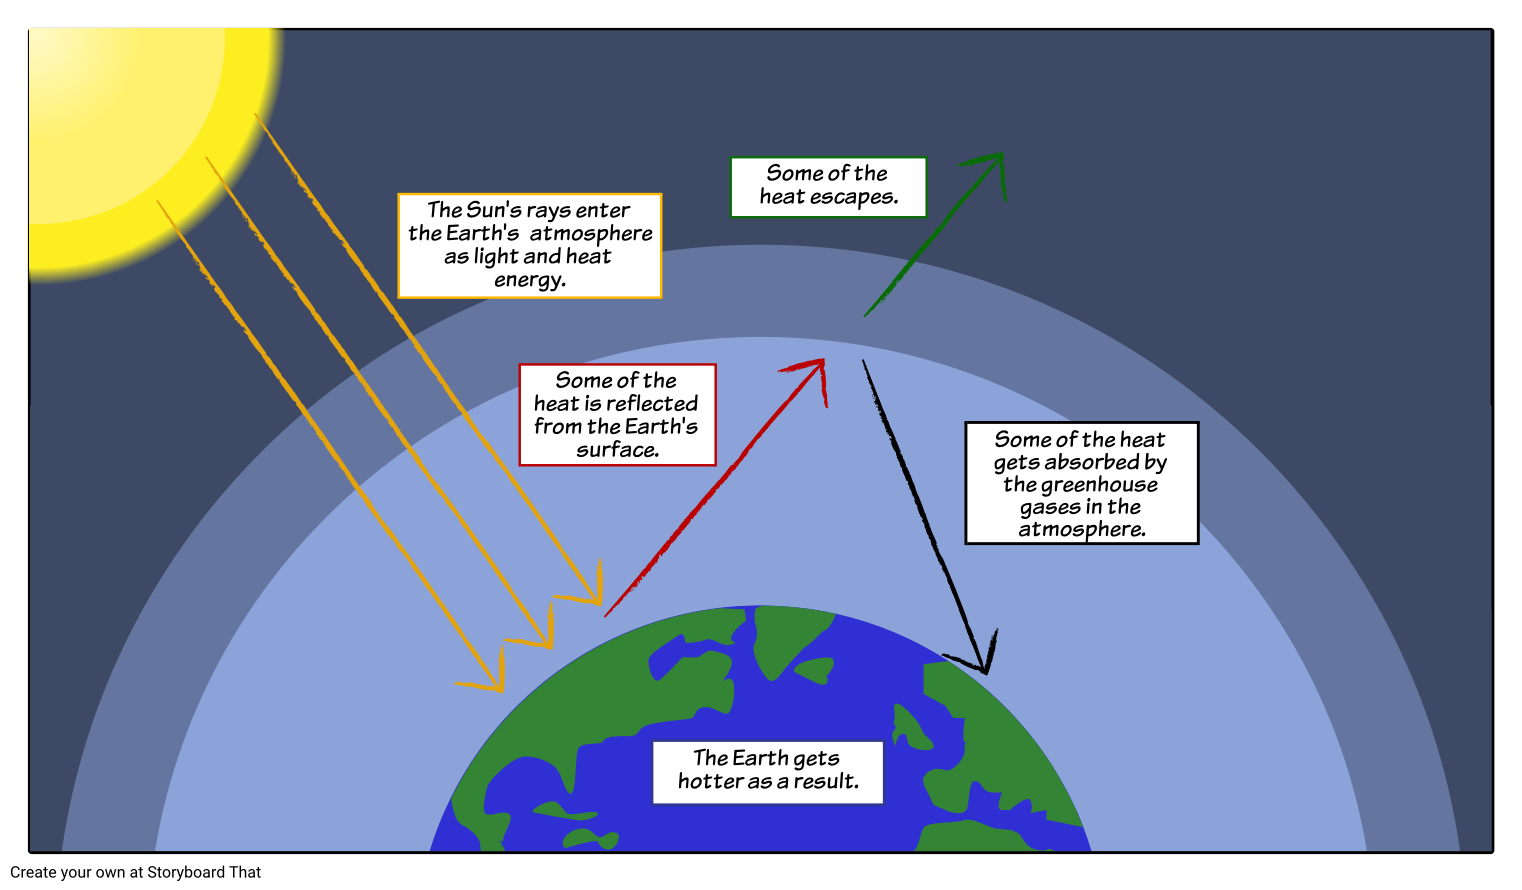 global warming the greenhouse effect model storyboard that is a great way for students to combine images and text in a creative way to produce quick and  [ 1522 x 890 Pixel ]